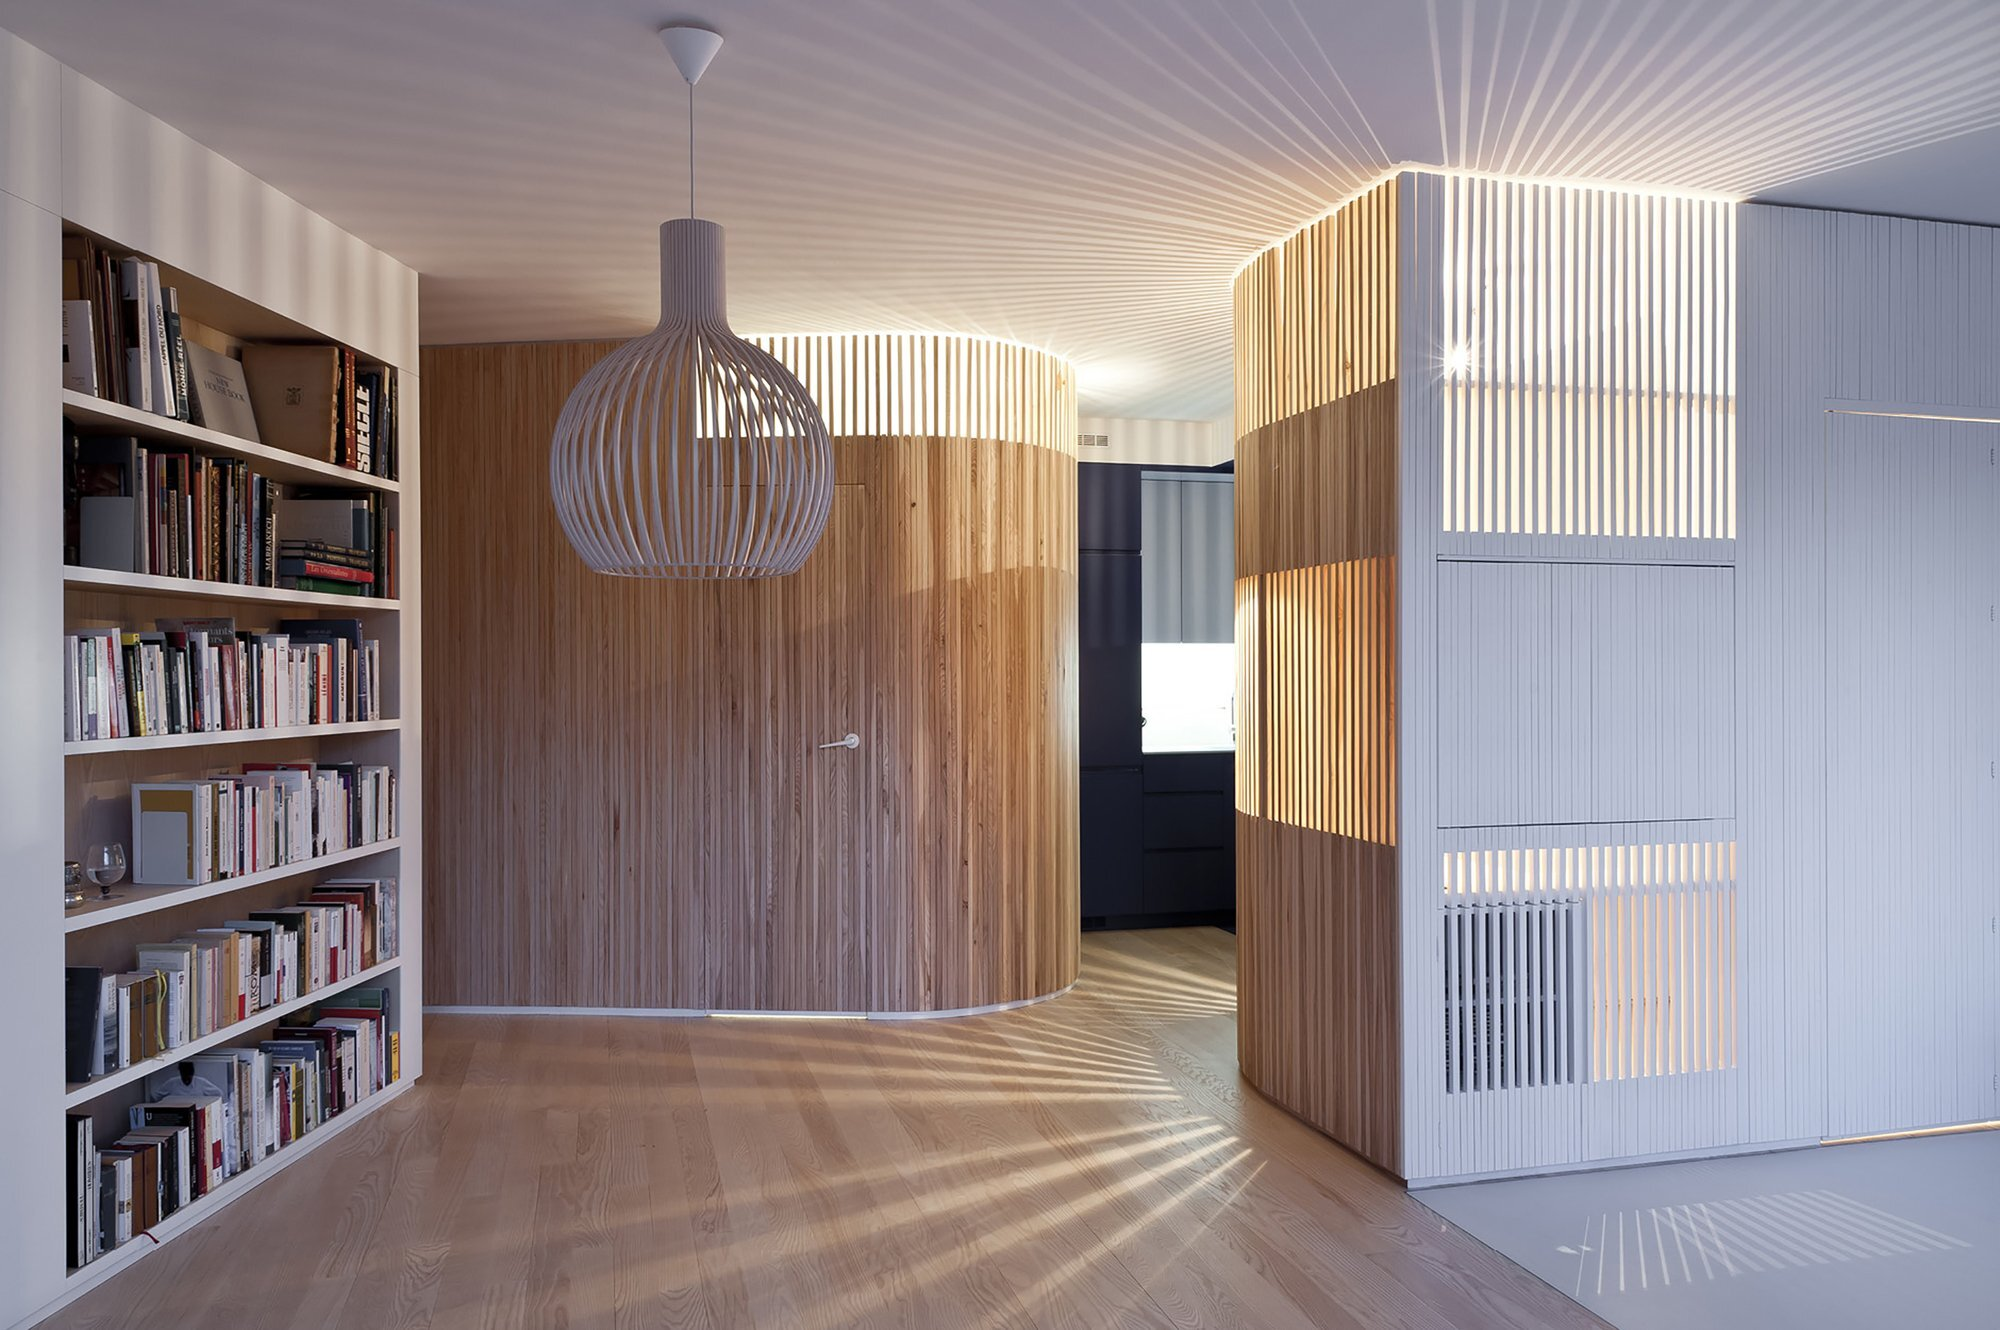 Home Renovation - Small Apartment - Julien Joly Architecture - Paris - Timber Slat Partitions - Humble Homes